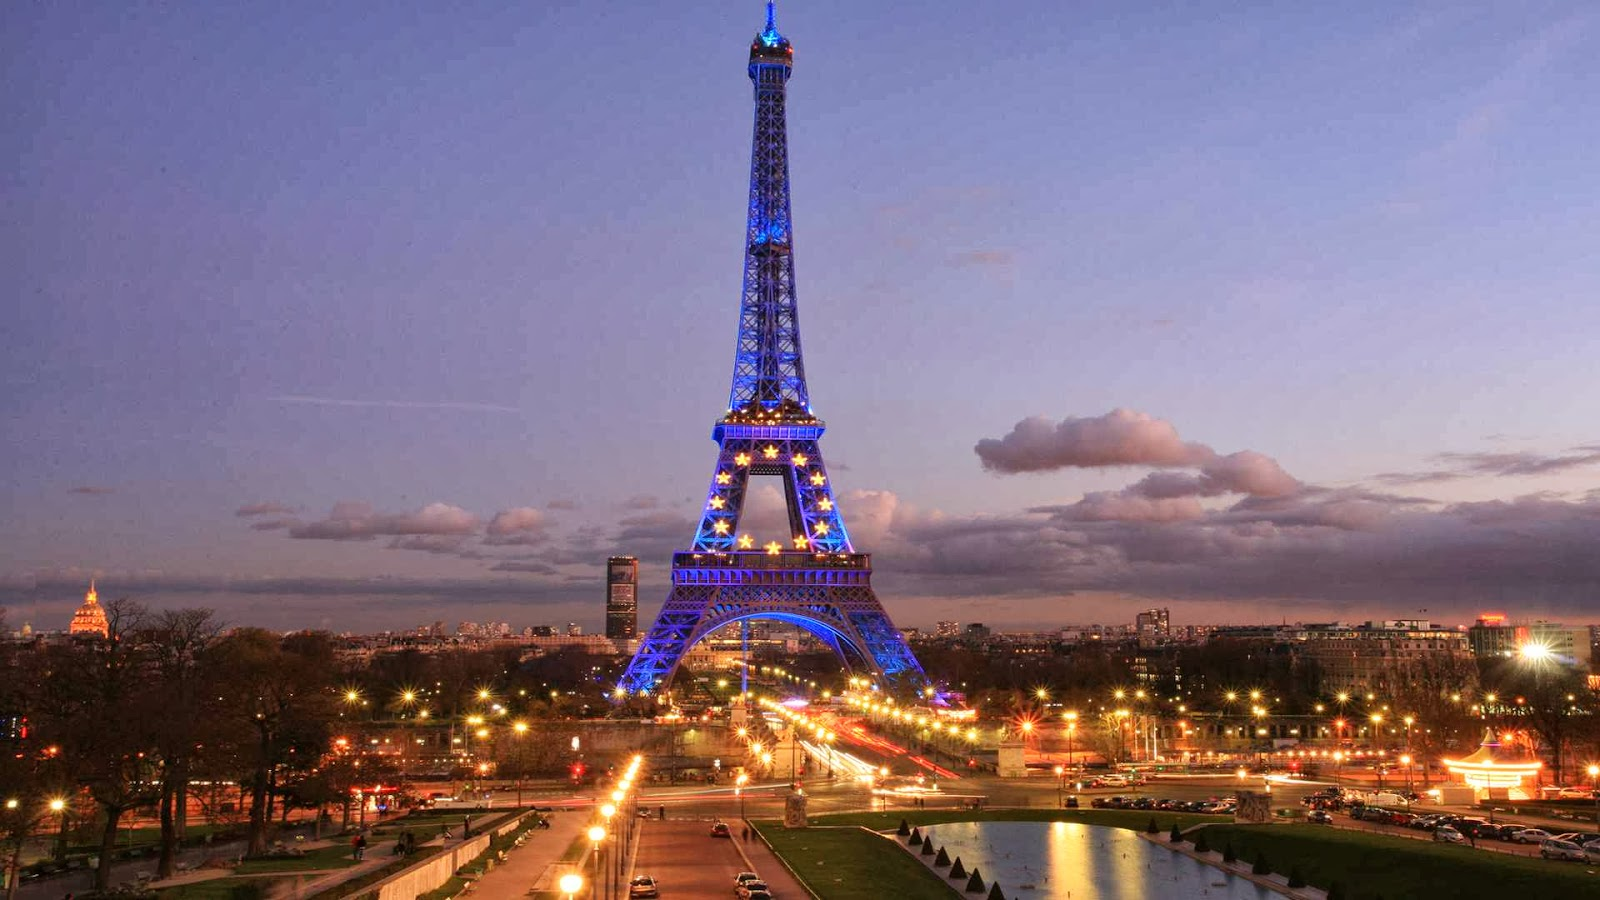 Tourist attractions in europe essay